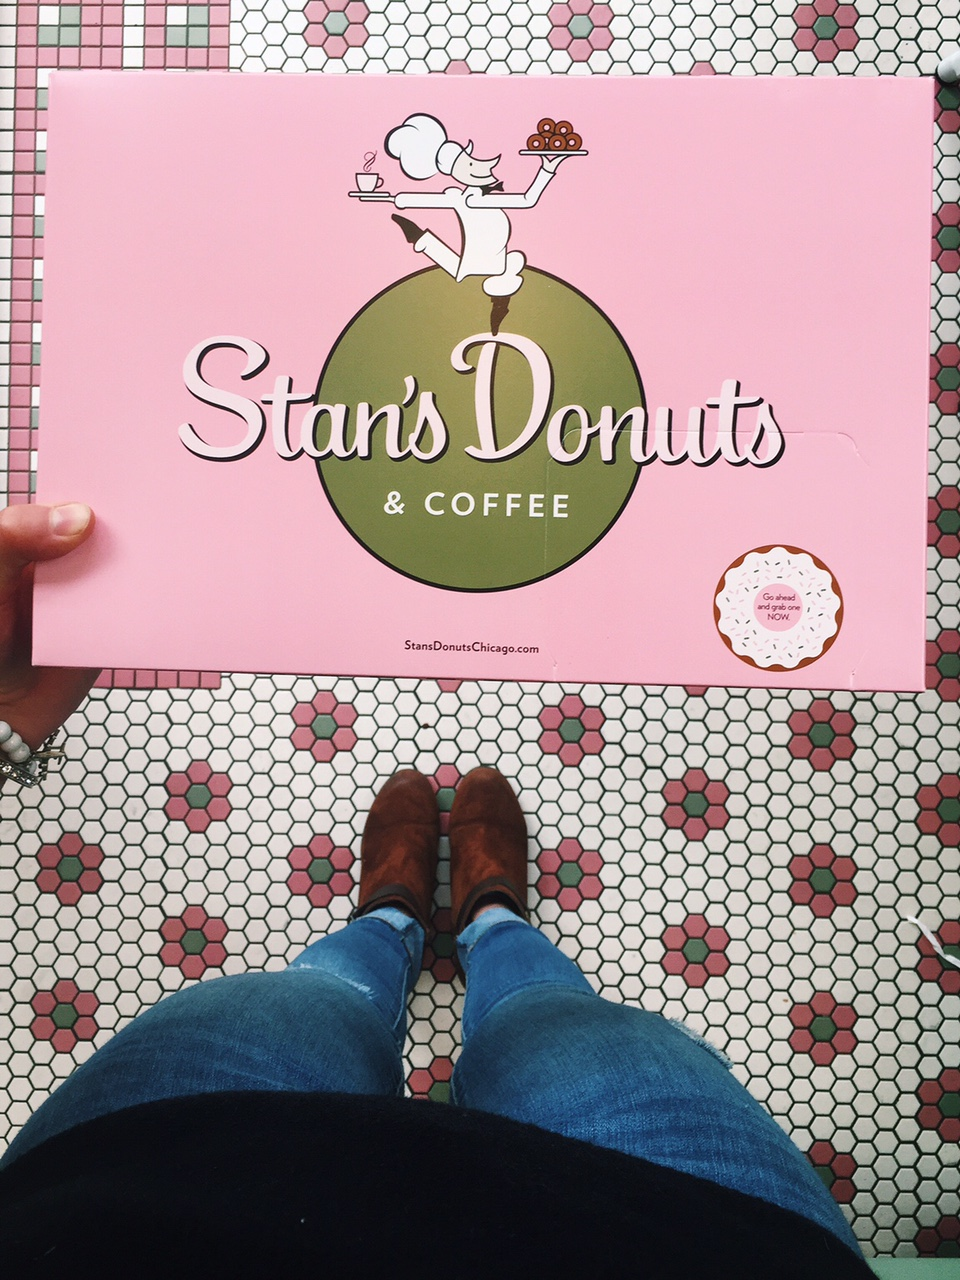 box of Stan's Donuts